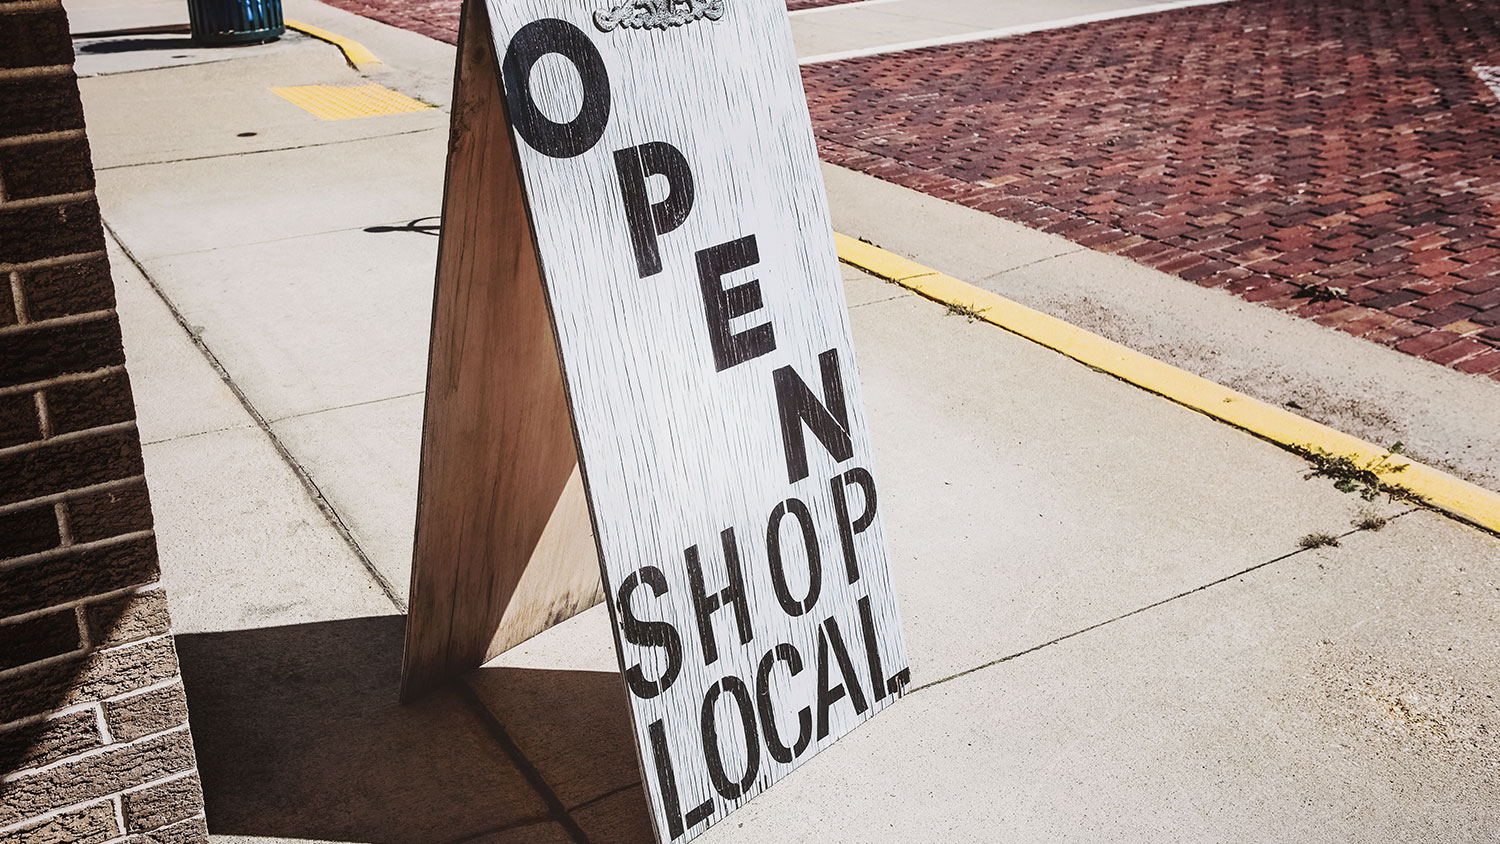 SUPPORT LOCAL STORES TO INCREASE PROPERTY VALUES